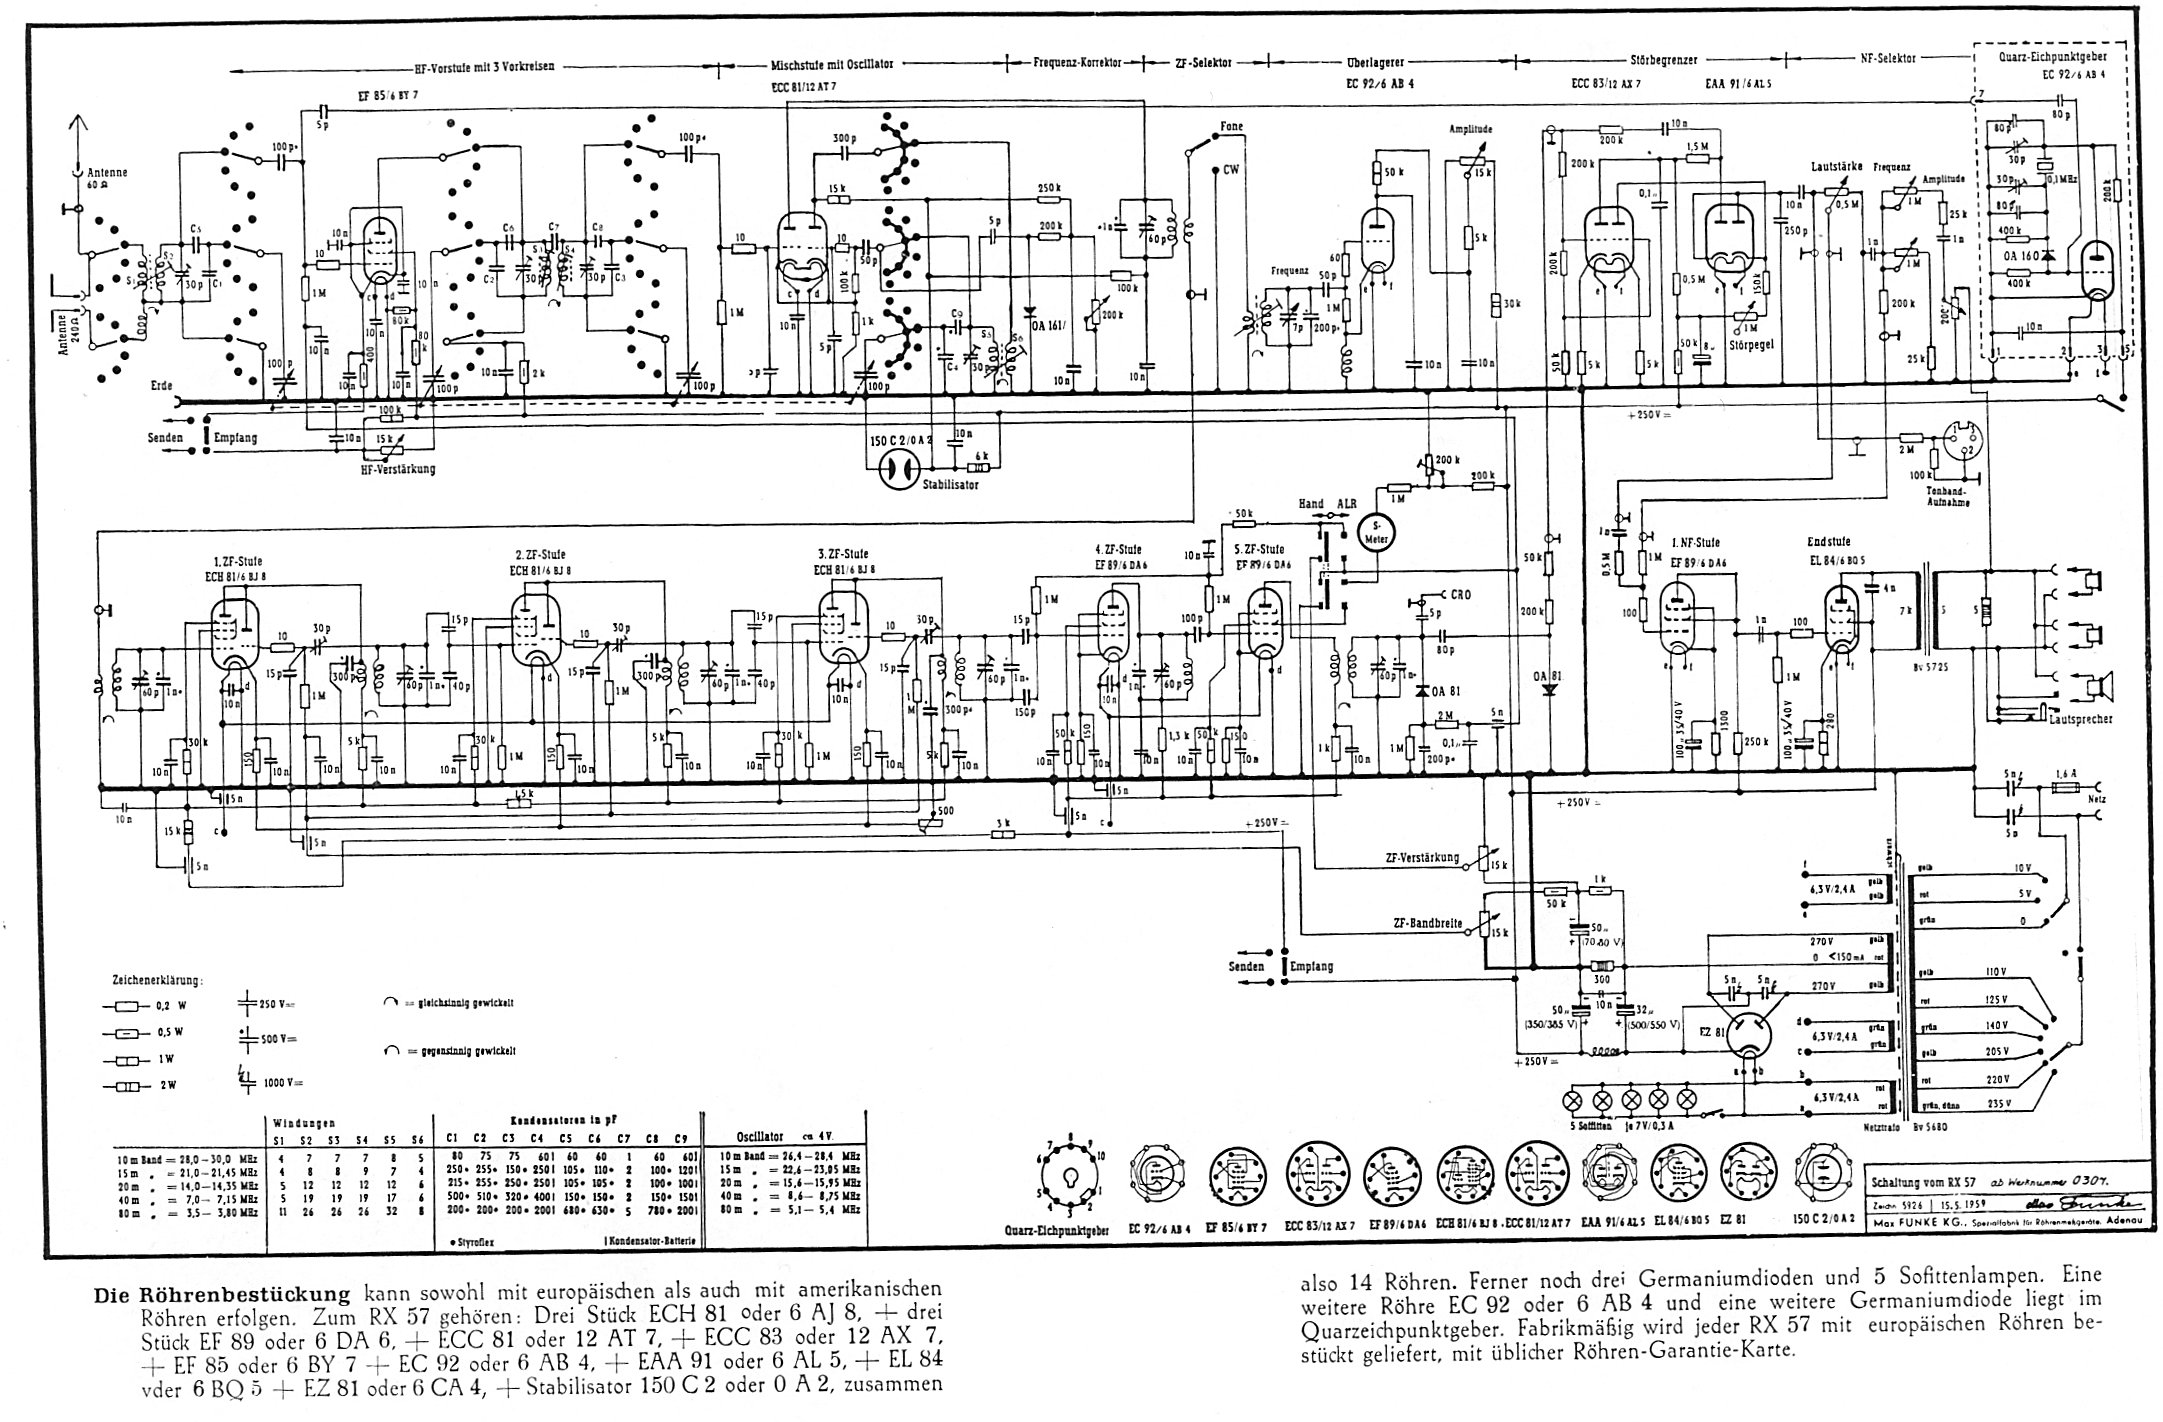 Kenwood Tm 261 Schematic Diagram Moreover Kenwood Tm 261a